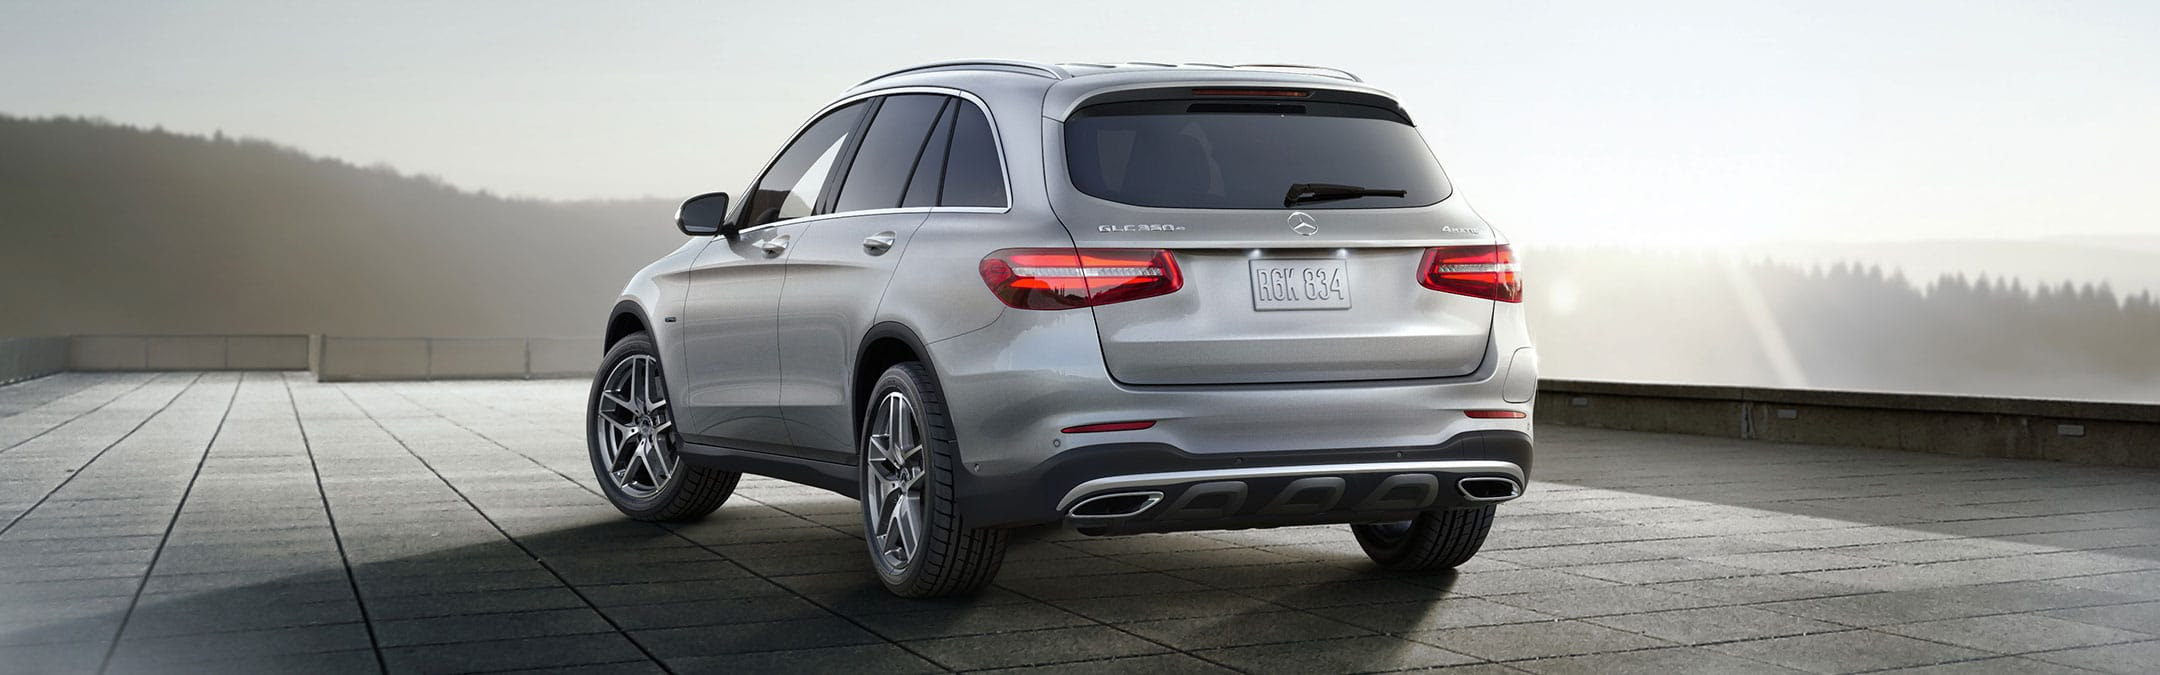 2019 GLC SUV Performance